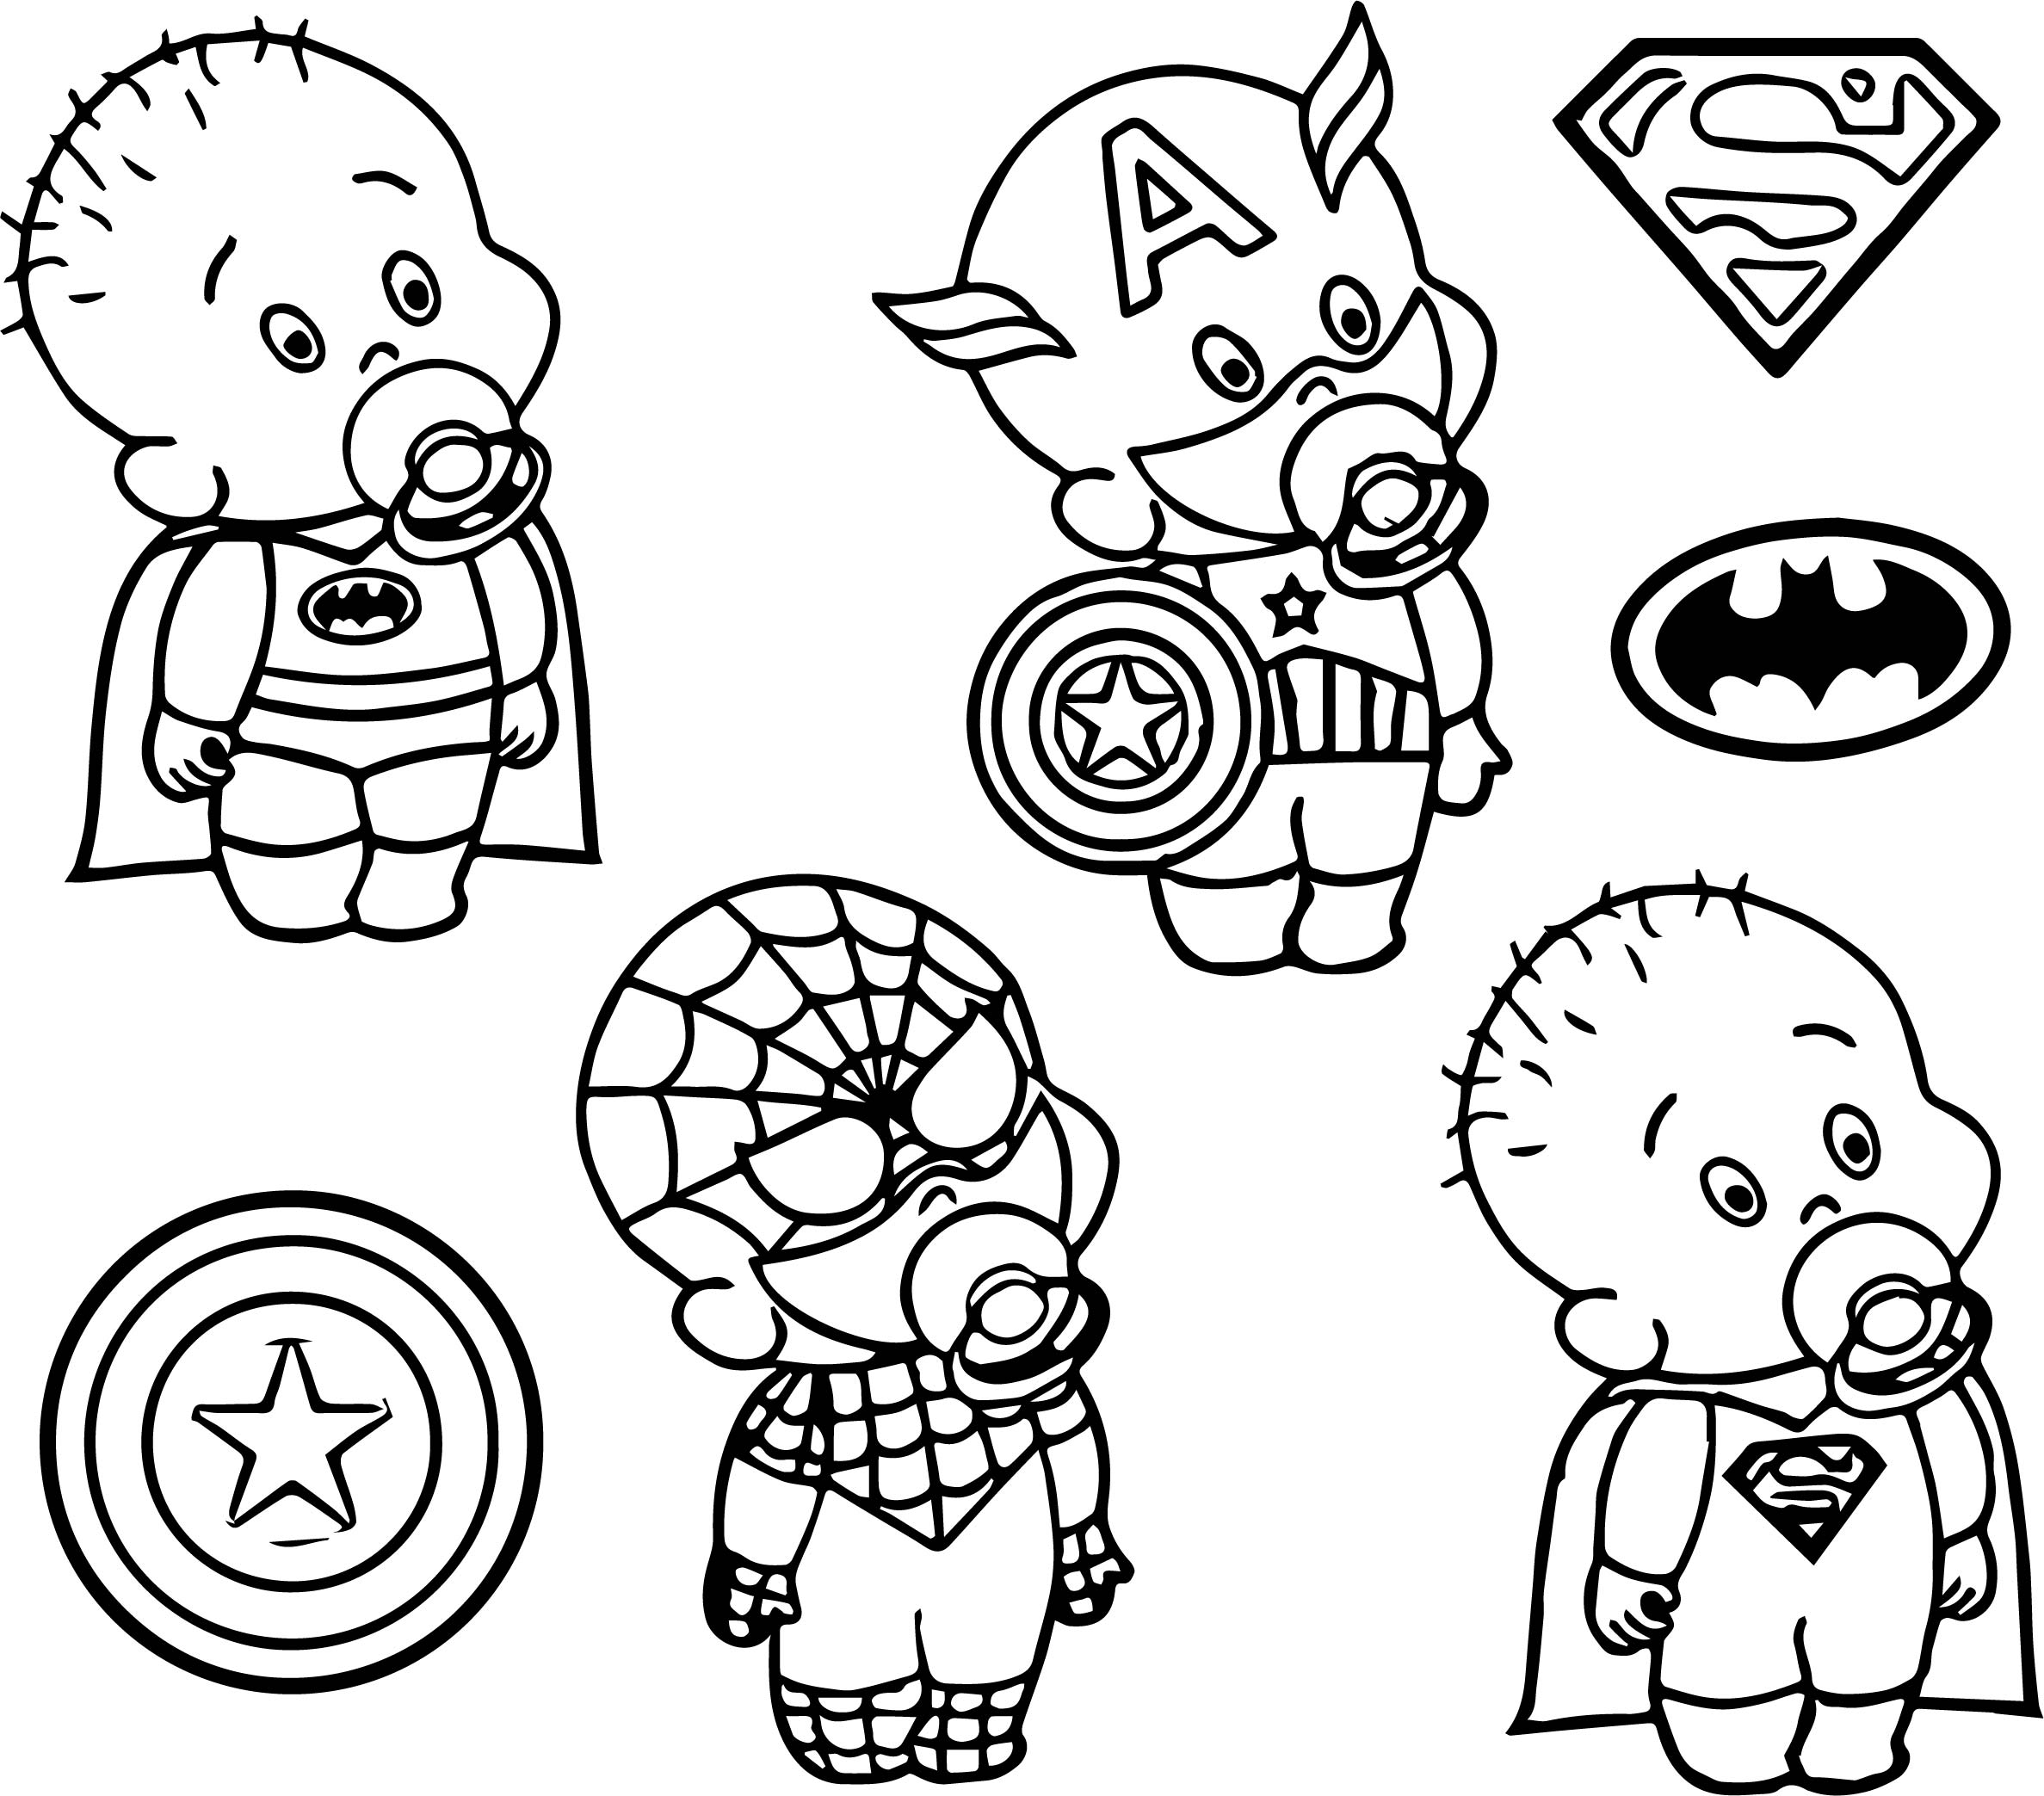 9 11 heroes coloring pages coloring pages for September 11 coloring pages